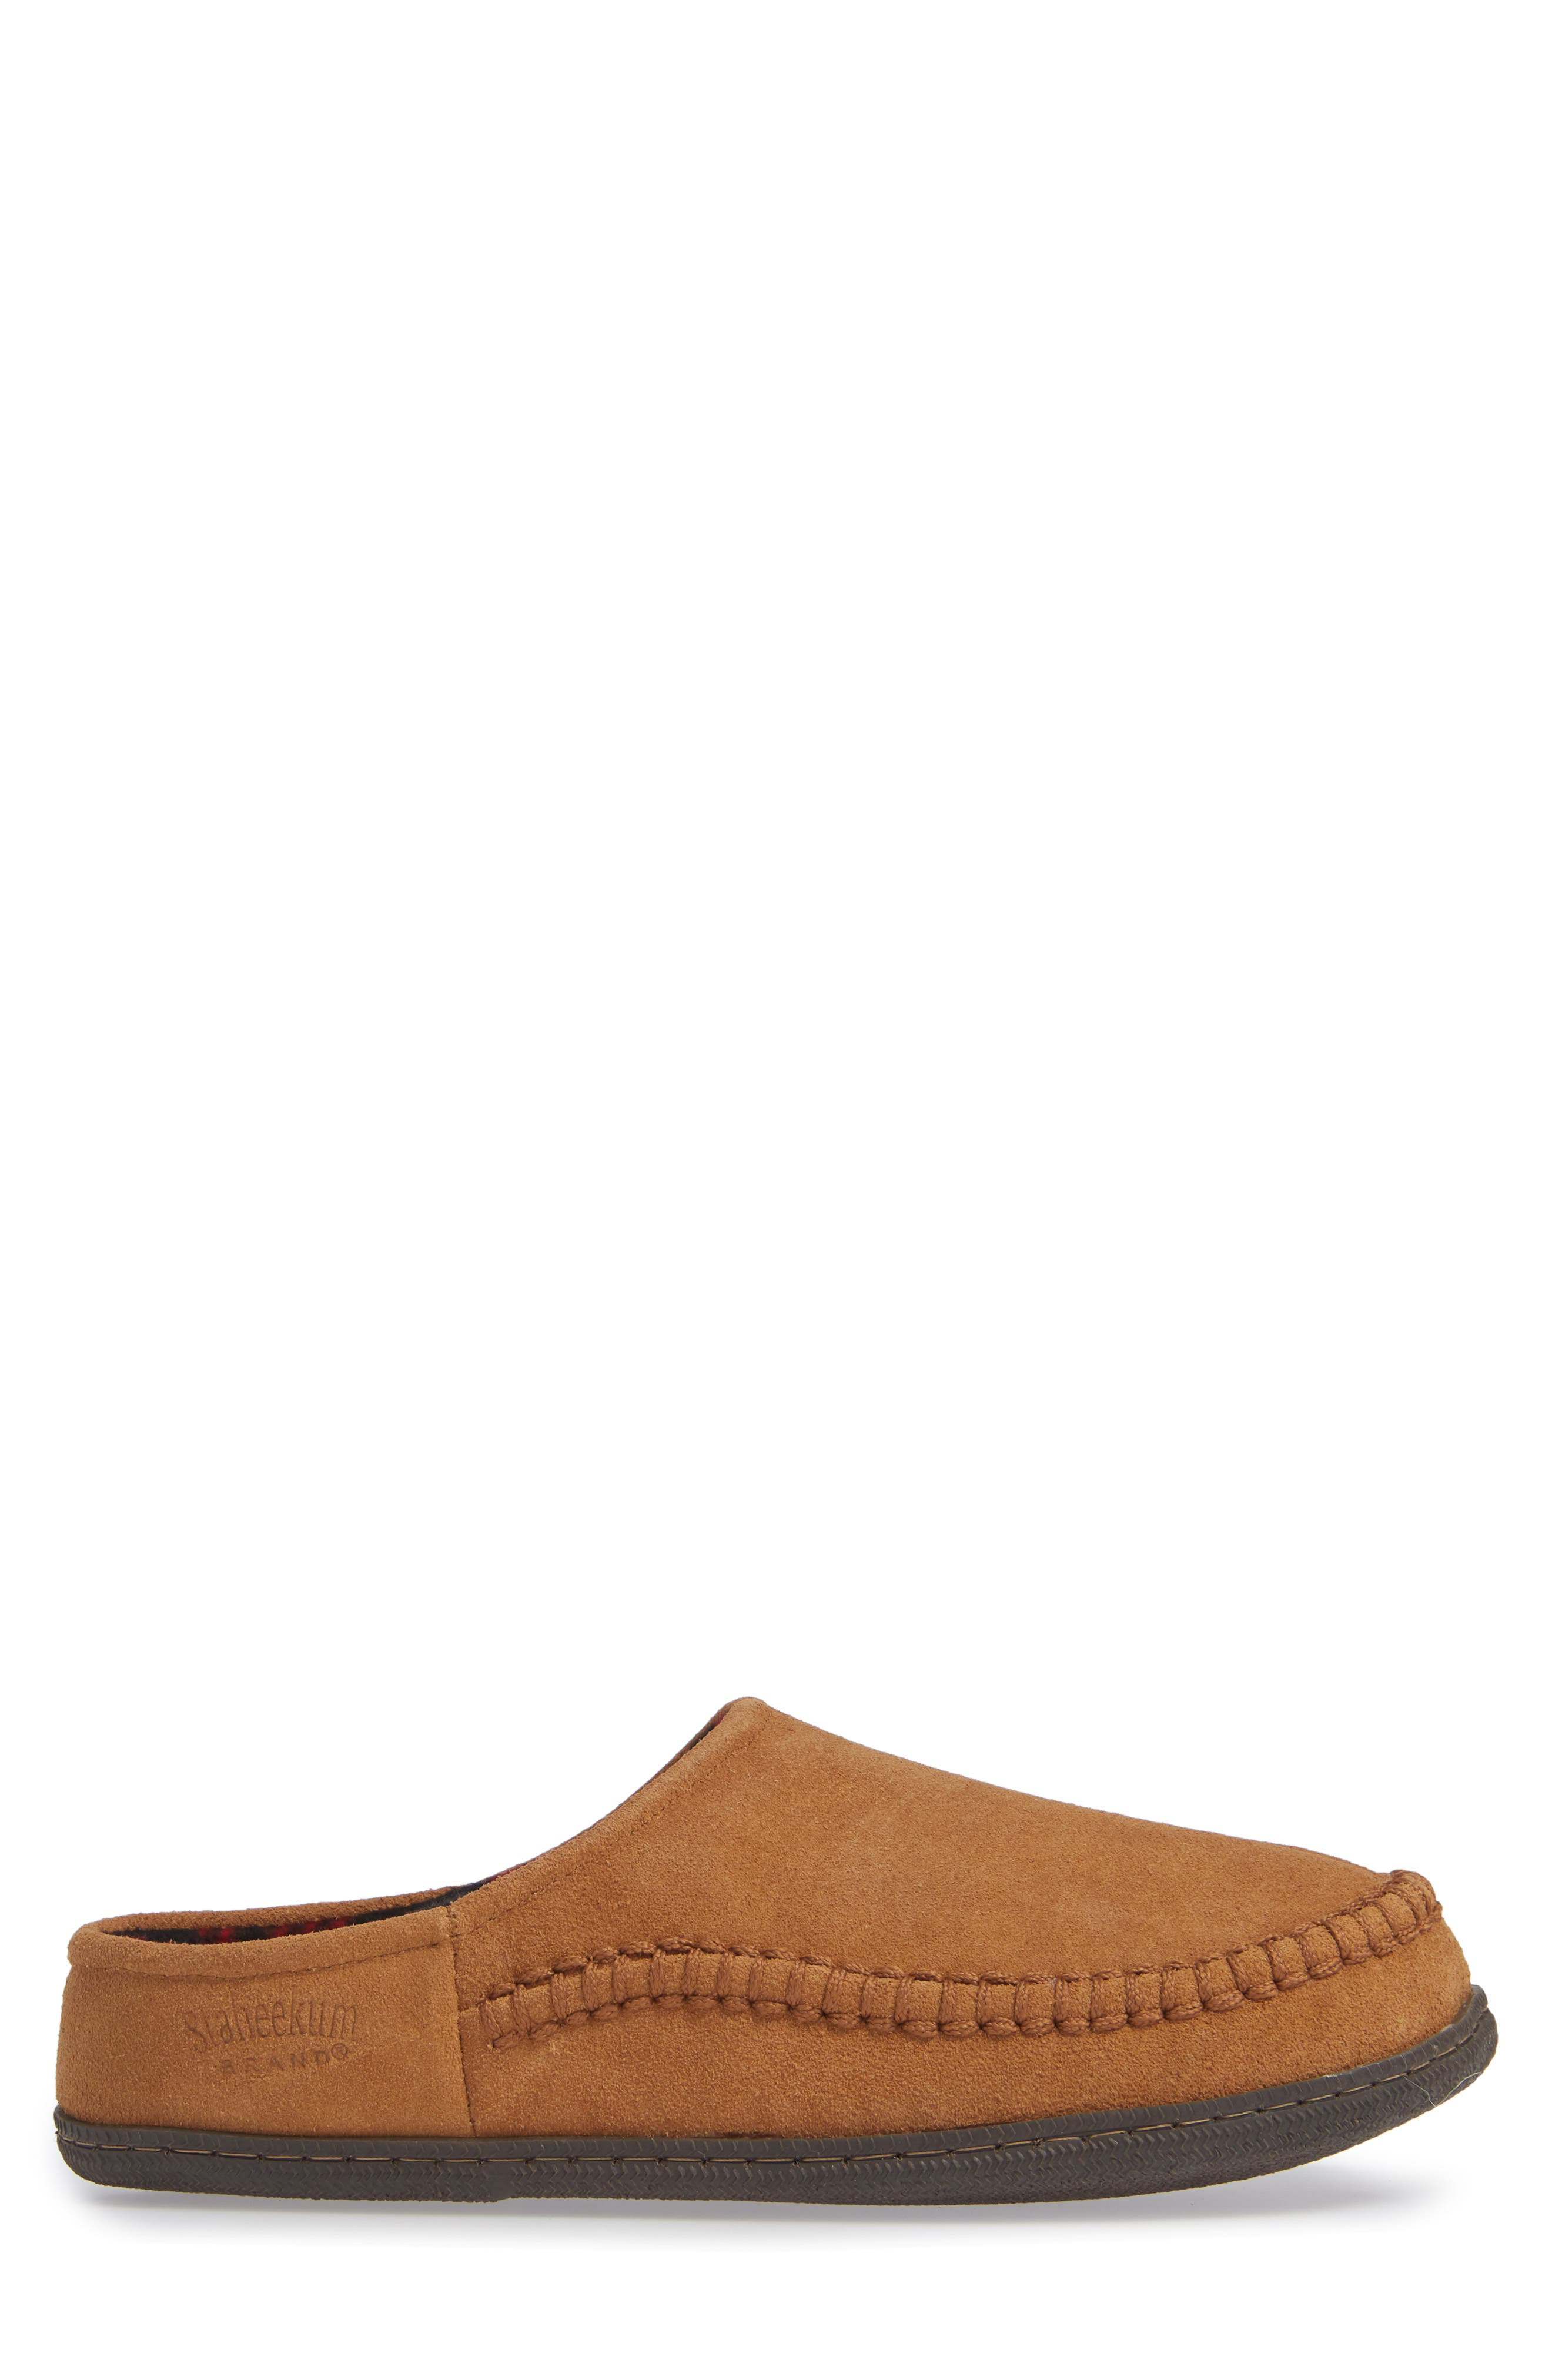 Cypress Flannel Lined Slipper,                             Alternate thumbnail 3, color,                             212